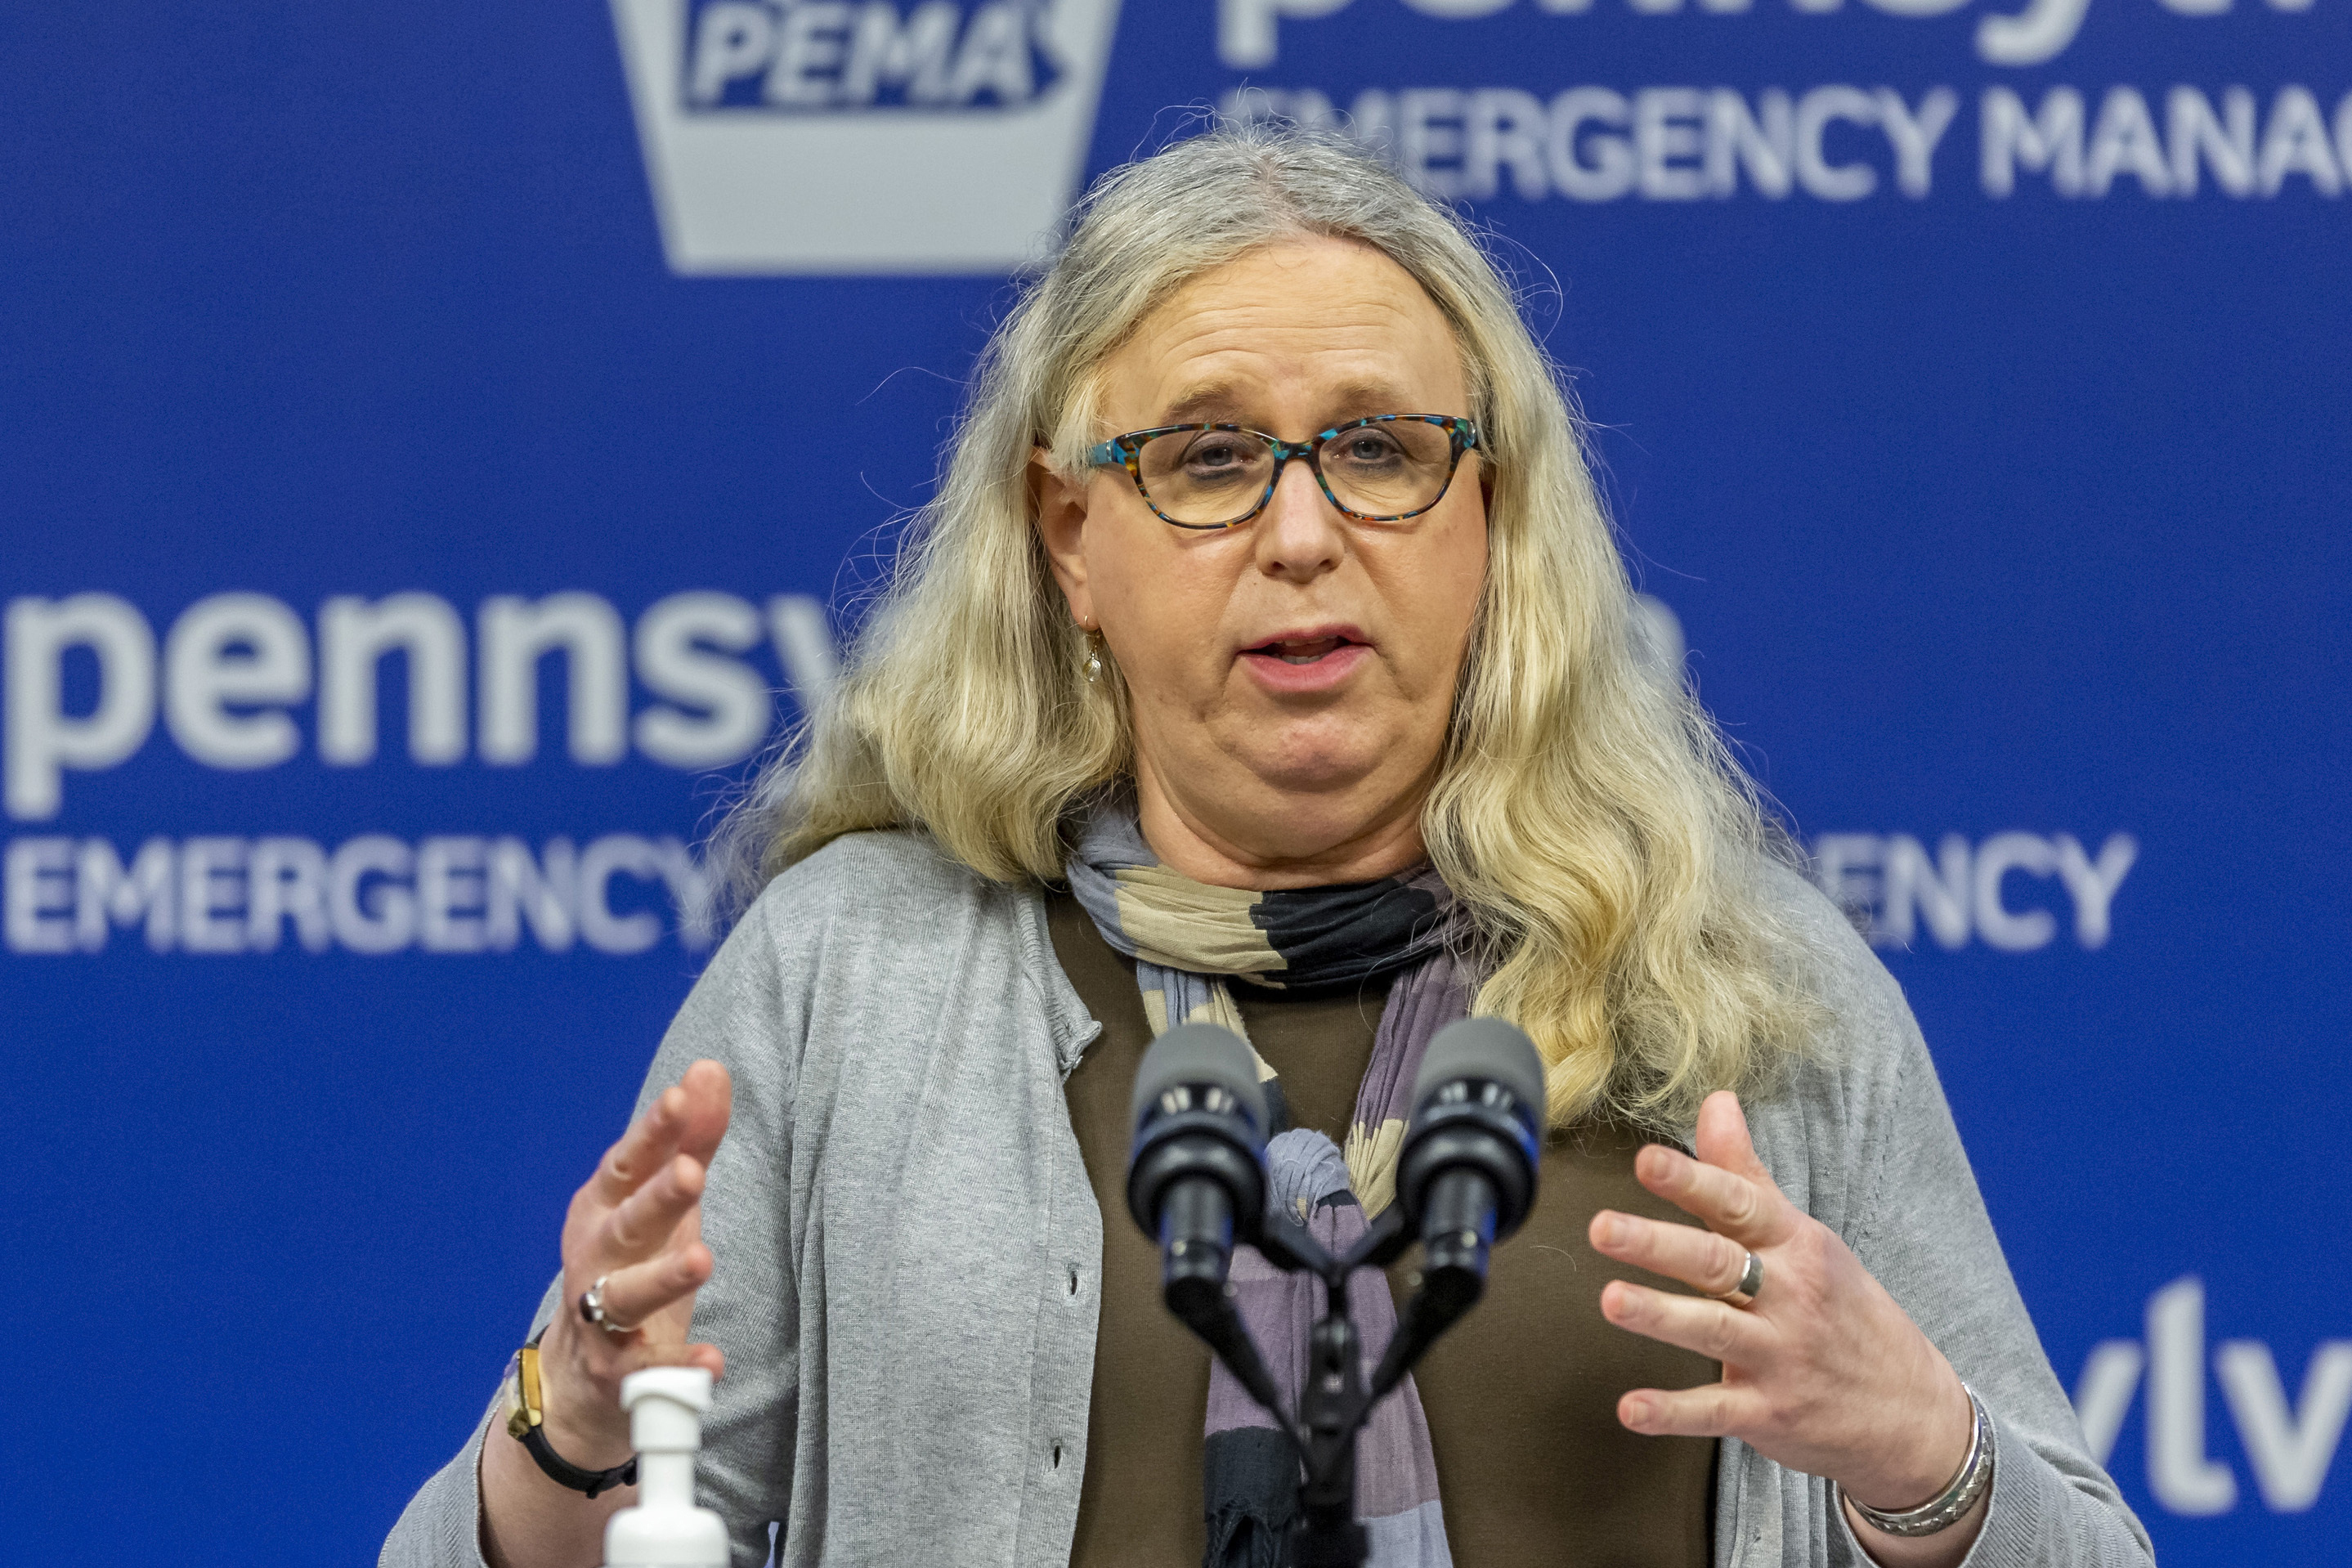 In this May 29, 2020, file photo, Pennsylvania Secretary of Health Dr. Rachel Levine meets with the media at the Pennsylvania Emergency Management Agency (PEMA) headquarters in Harrisburg, Pa.